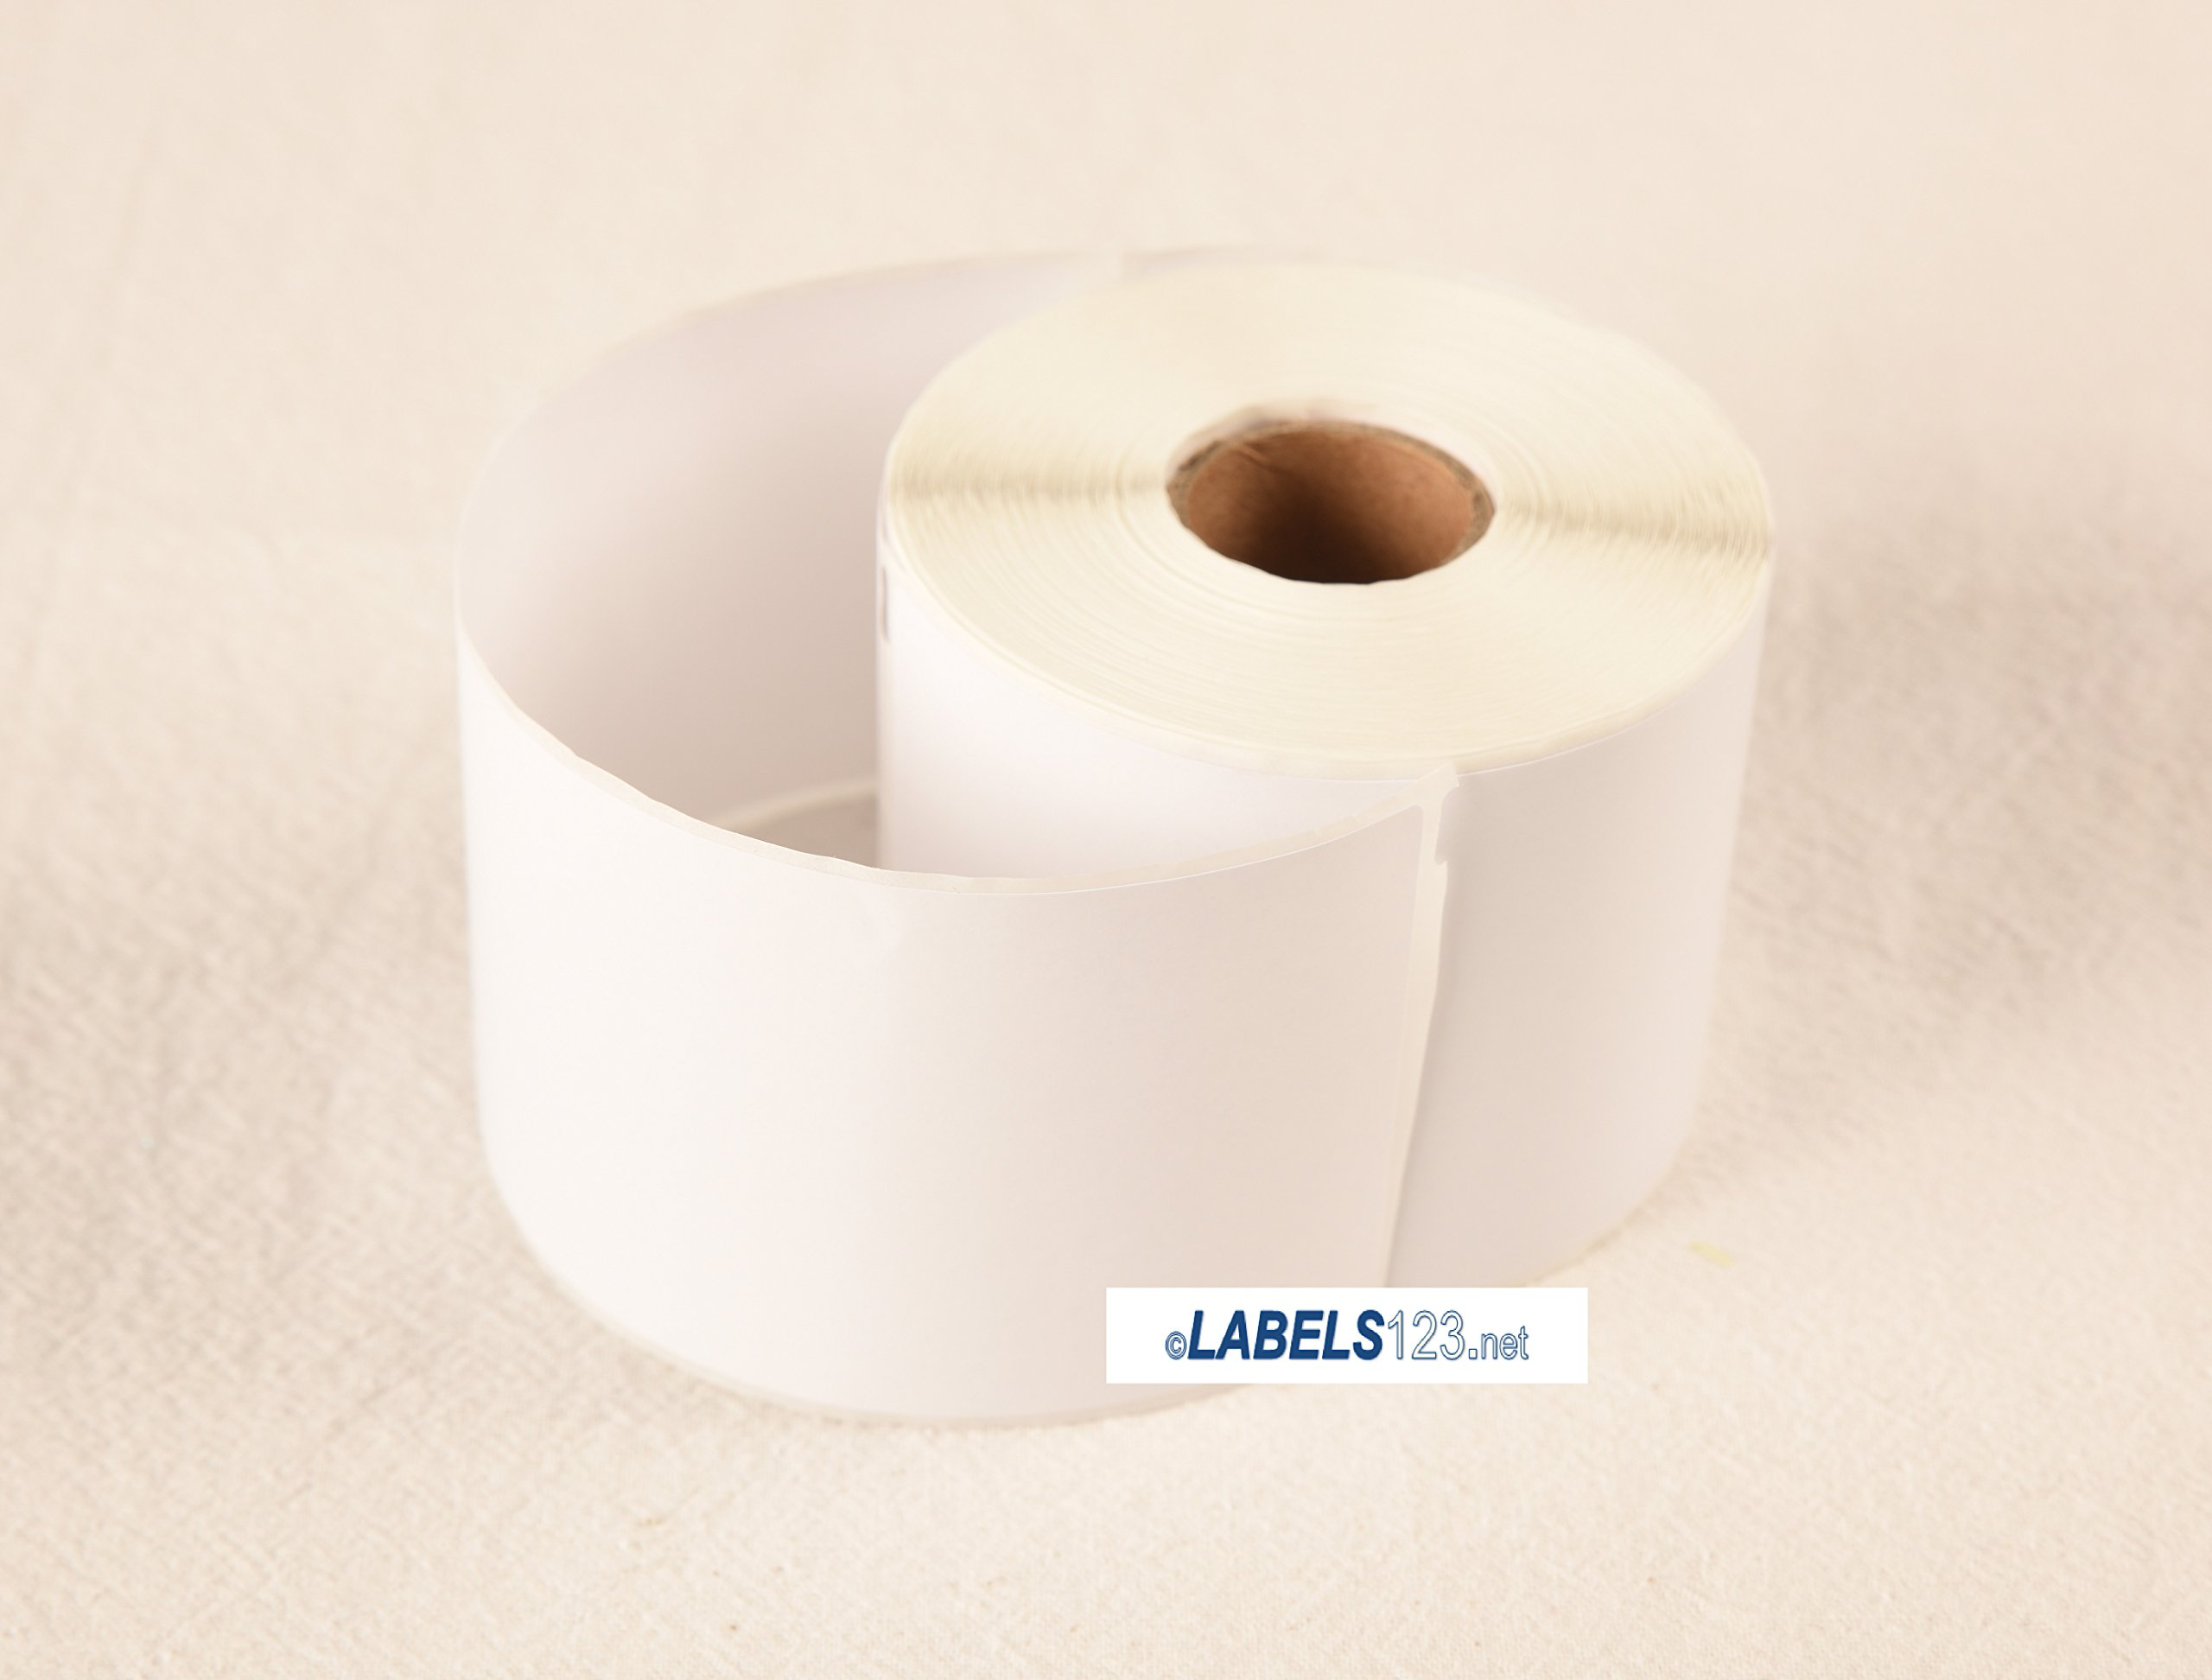 Labels White Blank 25 Rolls of 99019 Address Mailing Name Tag - Dymo Turbo 450 Duo 400 Compatible Printers